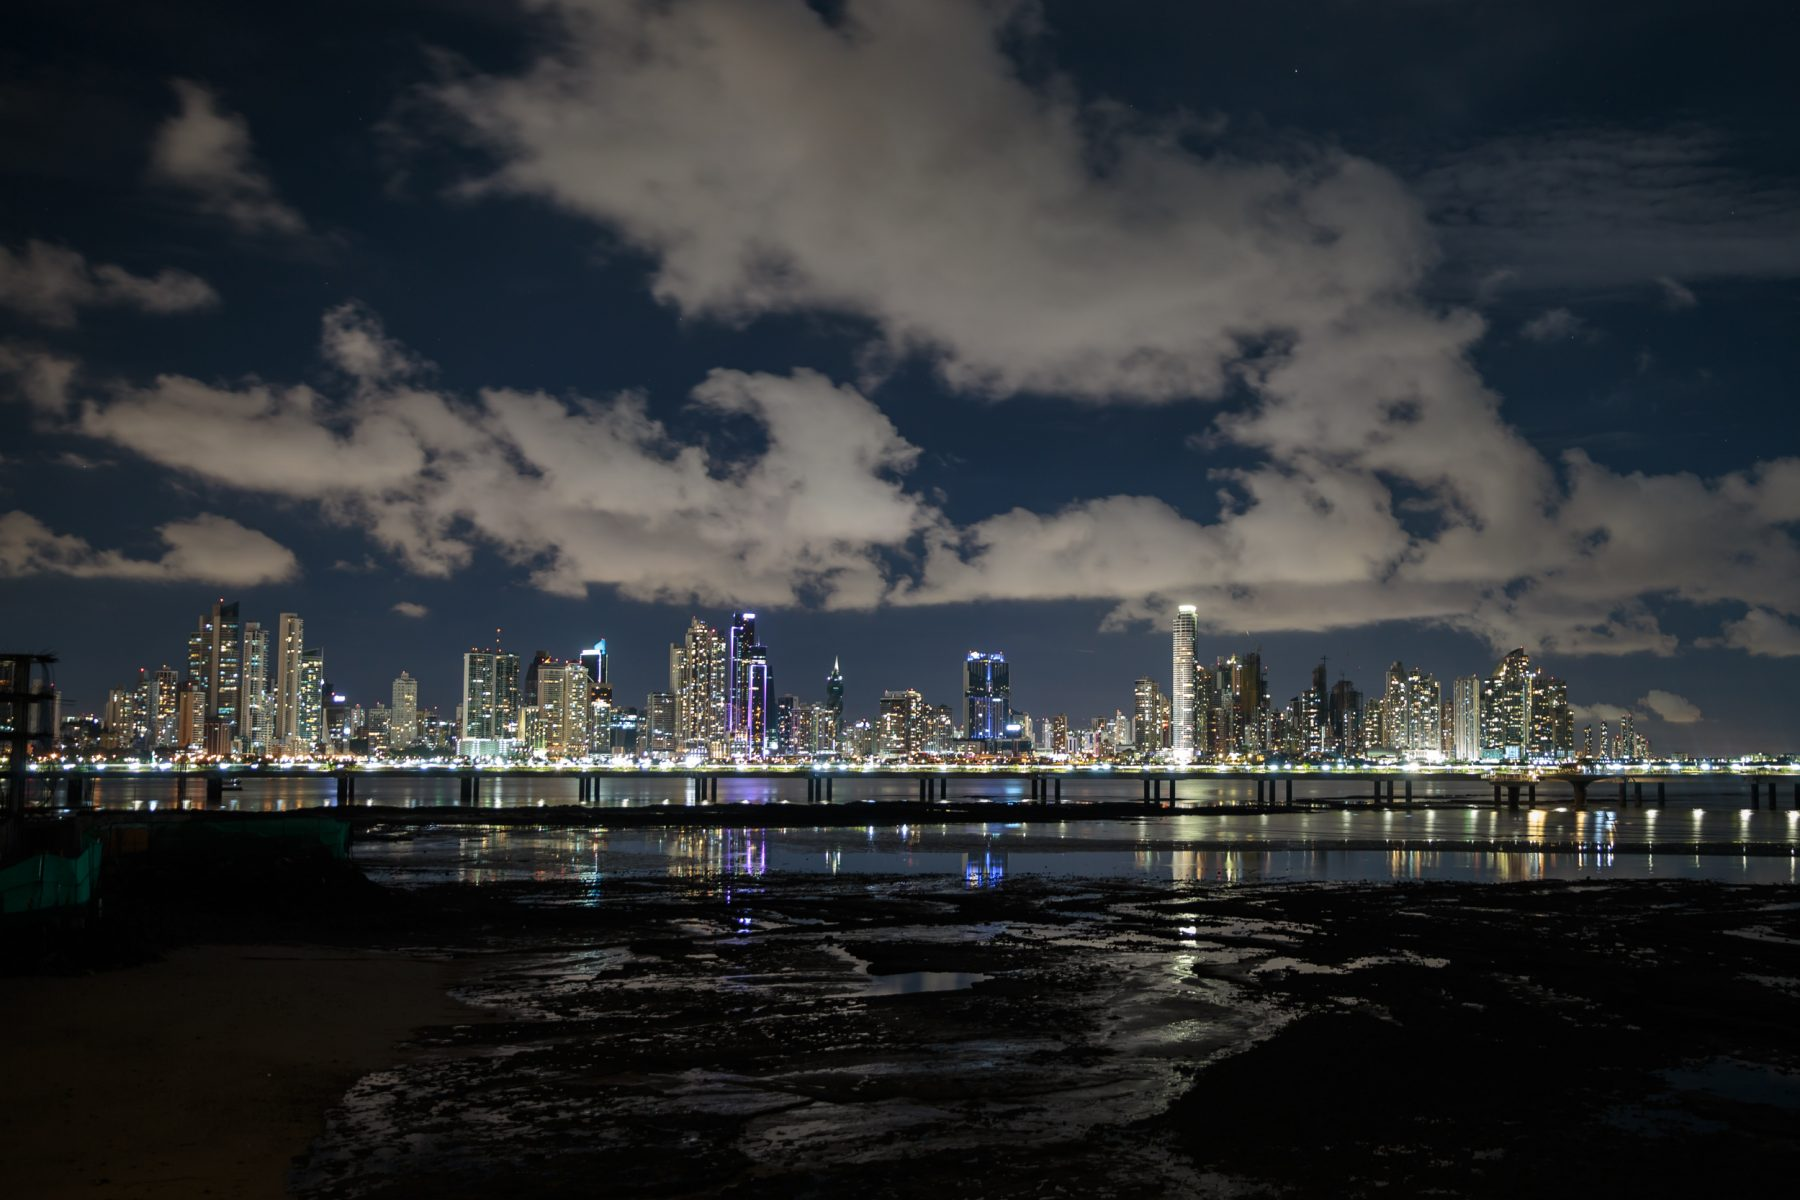 Skyline of Panama City at night, view from Casco Viejo